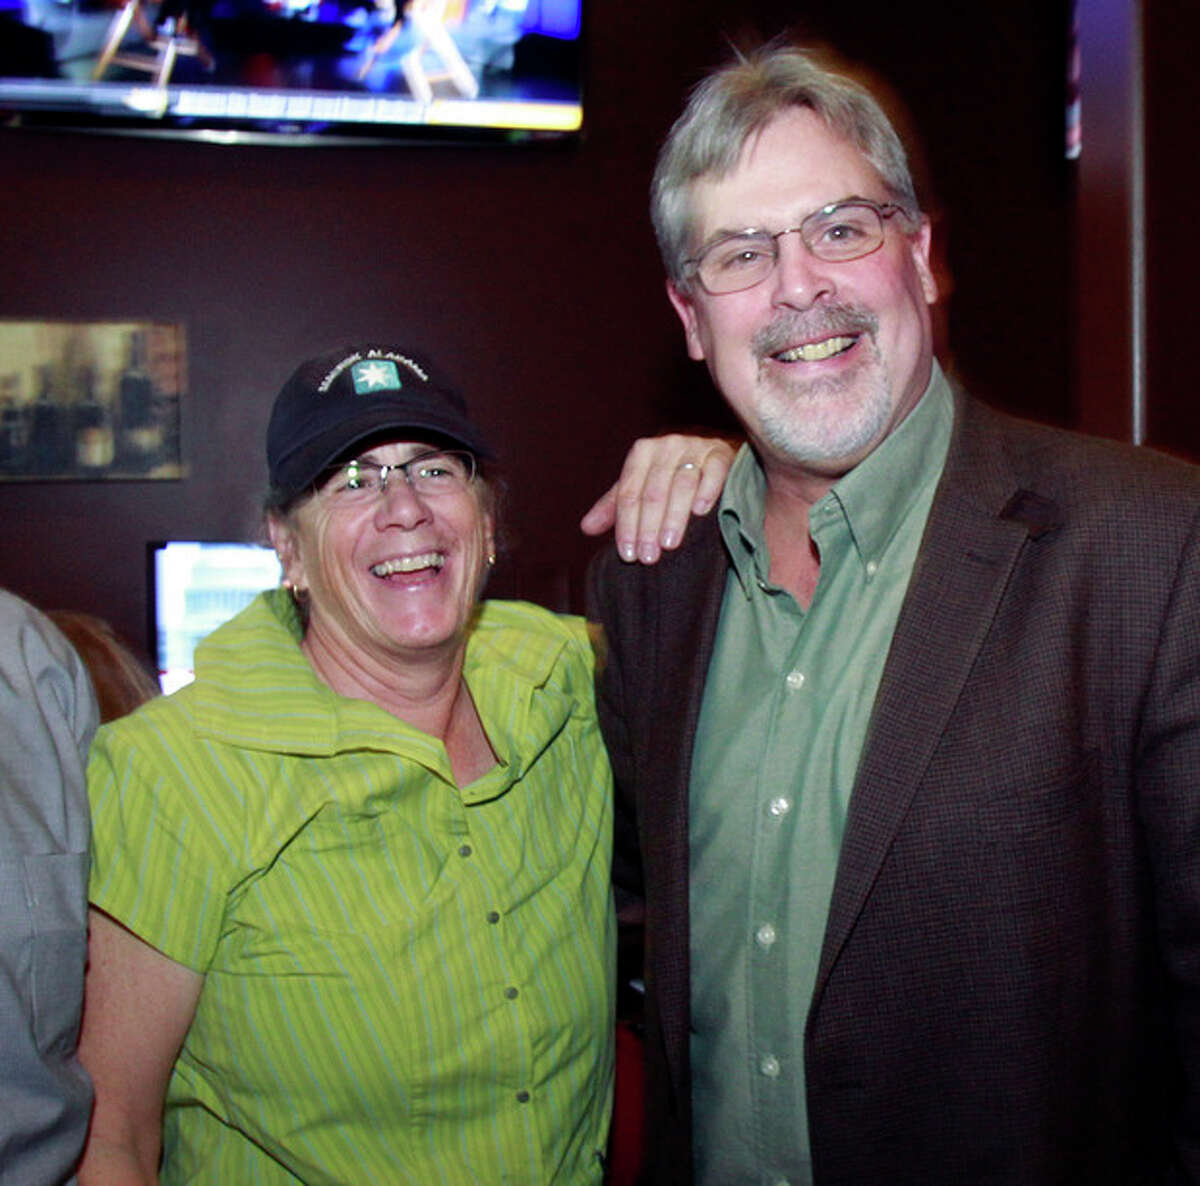 """Captain Richard Phillips, the real-life ship captain being played by Tom Hanks in the docudrama """"Captain Phillips,"""" right, enjoys a laugh with sister-in-law Lea Coggio, before a screening of """"Captain Phillips,"""" on Tuesday, Oct. 1, 2013 in Williston, Vt. The film was adapted from the captain?'s memoir about the 2009 hijacking of his vessel by Somali pirates. Phillips spent five days as a hostage of the pirates on a lifeboat, where he was beaten, tied up and threatened before he was rescued days later by U.S. Navy SEALs. (AP Photo/Toby Talbot)"""